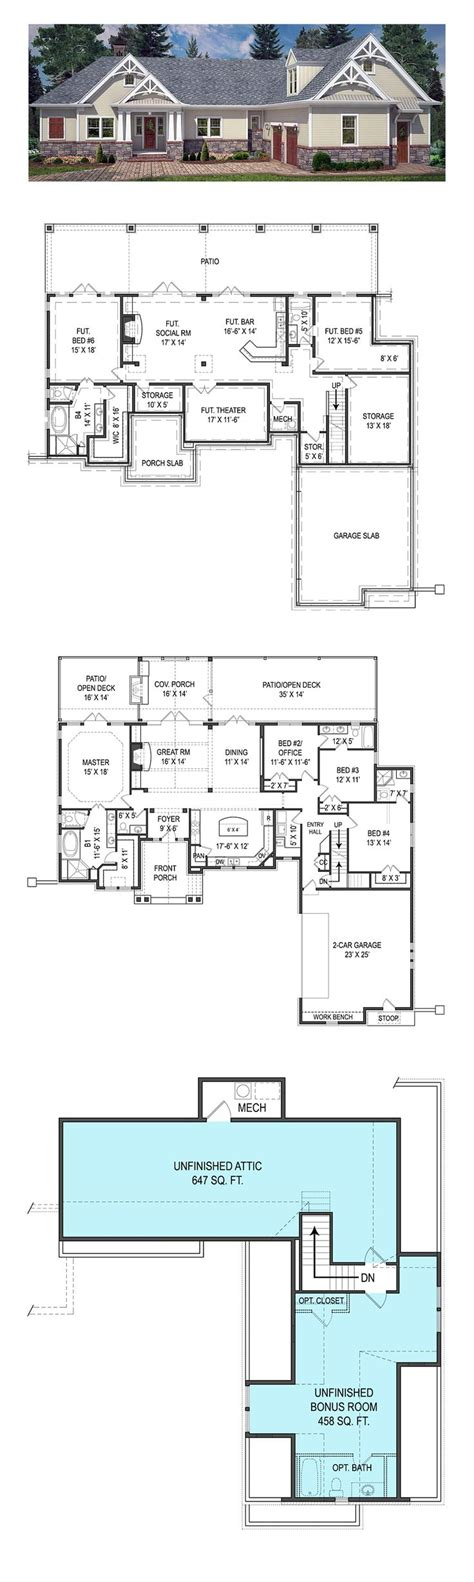 basement house plans house plans walkout basements home plans with basements luxamcc